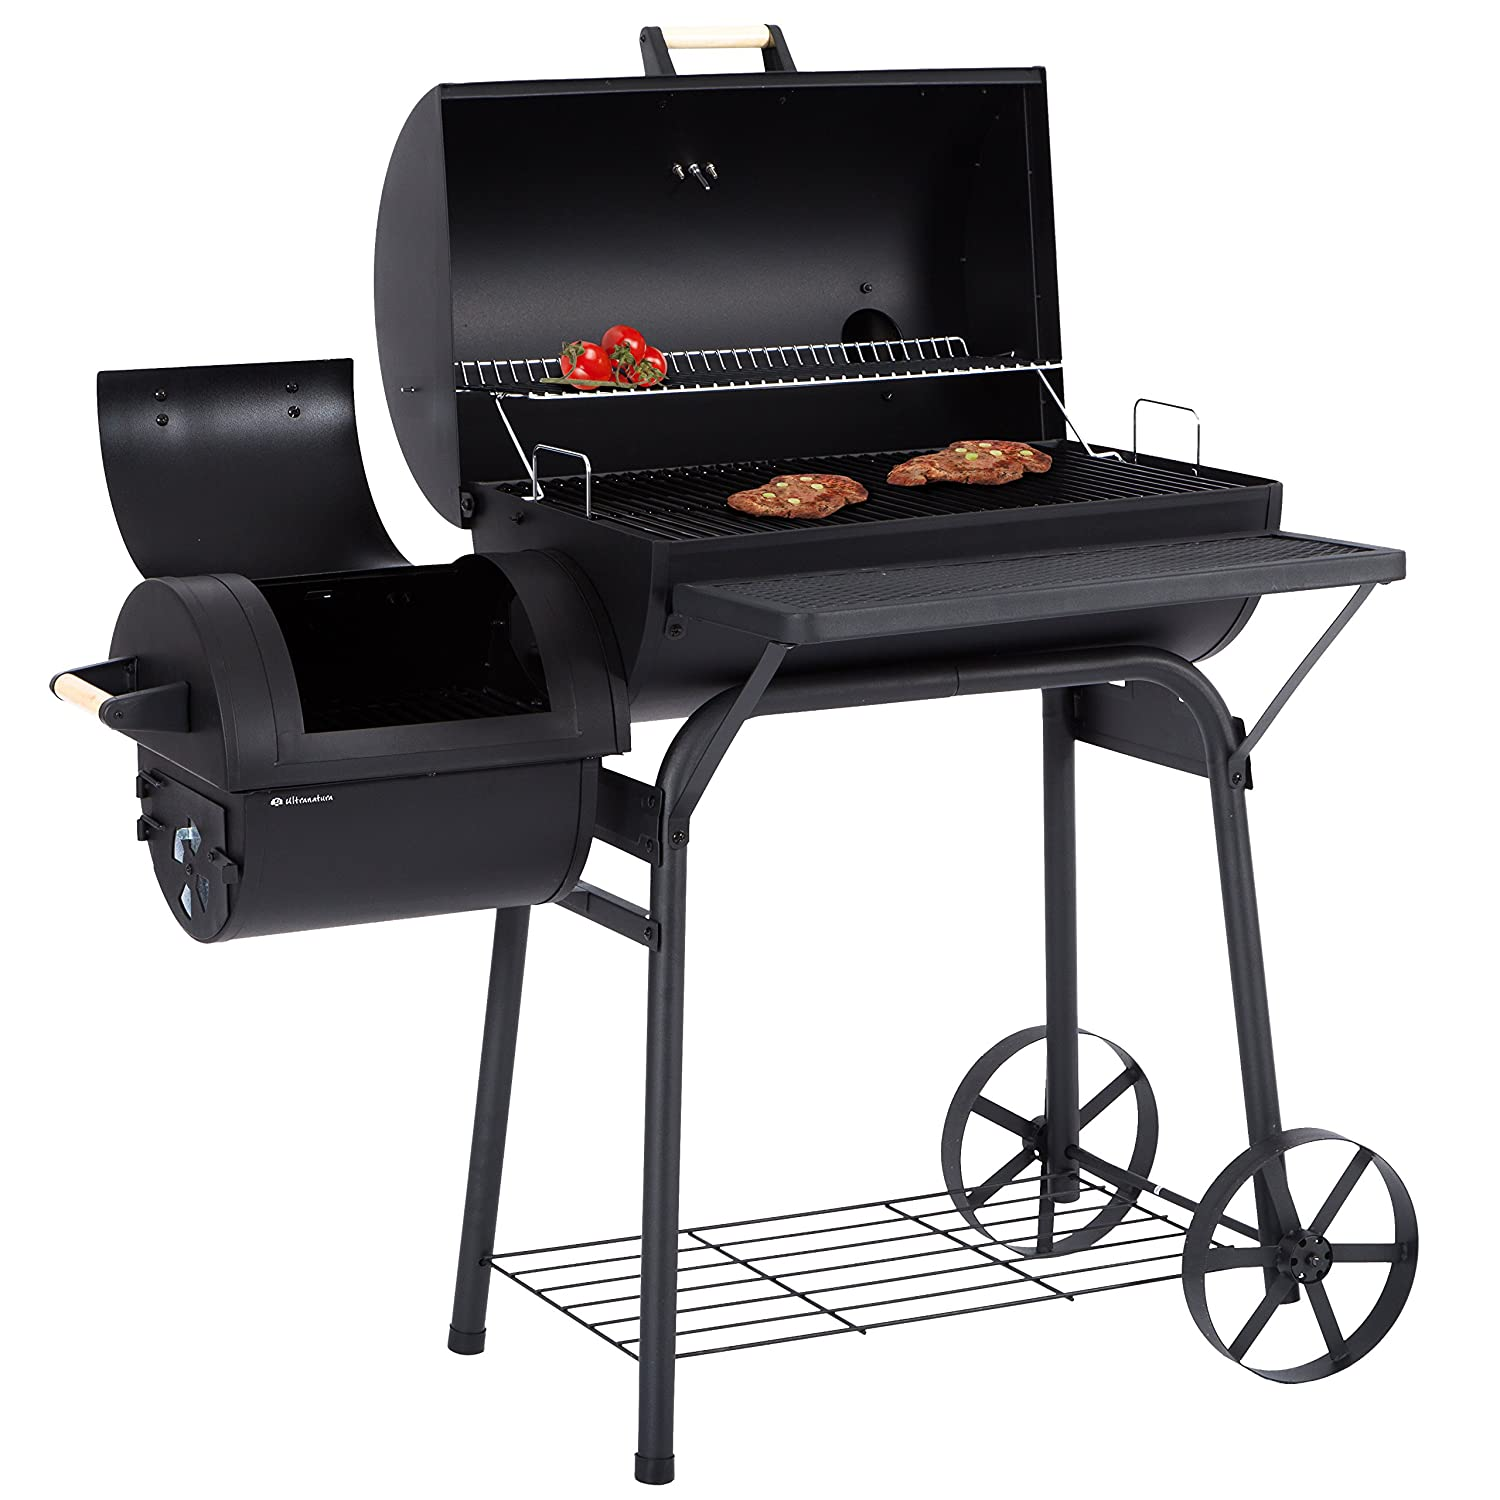 Ultranatura Smoker Grill Denver with two Combustion Chambers, Professional Style Charcoal Barrel Smoker Grill on Wheels for Outdoor Cooking 200100000037